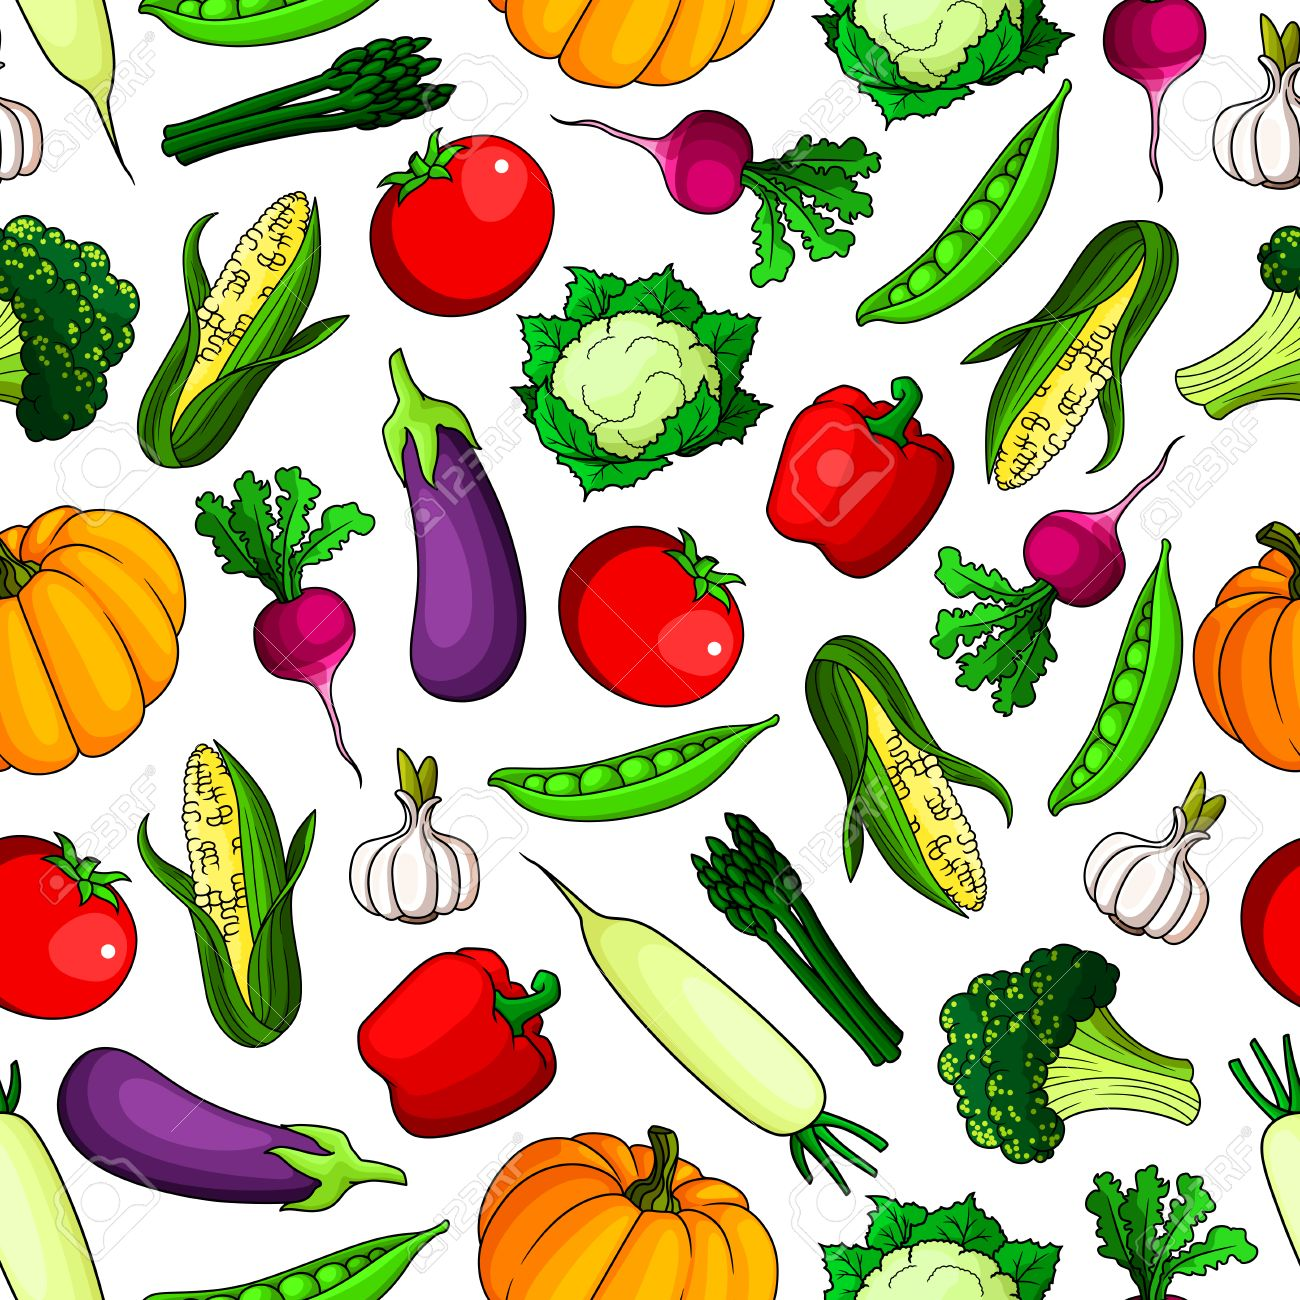 Fresh Farm Vegetables Seamless Background Wallpaper With Icon Royalty Free Cliparts Vectors And Stock Illustration Image 62637932